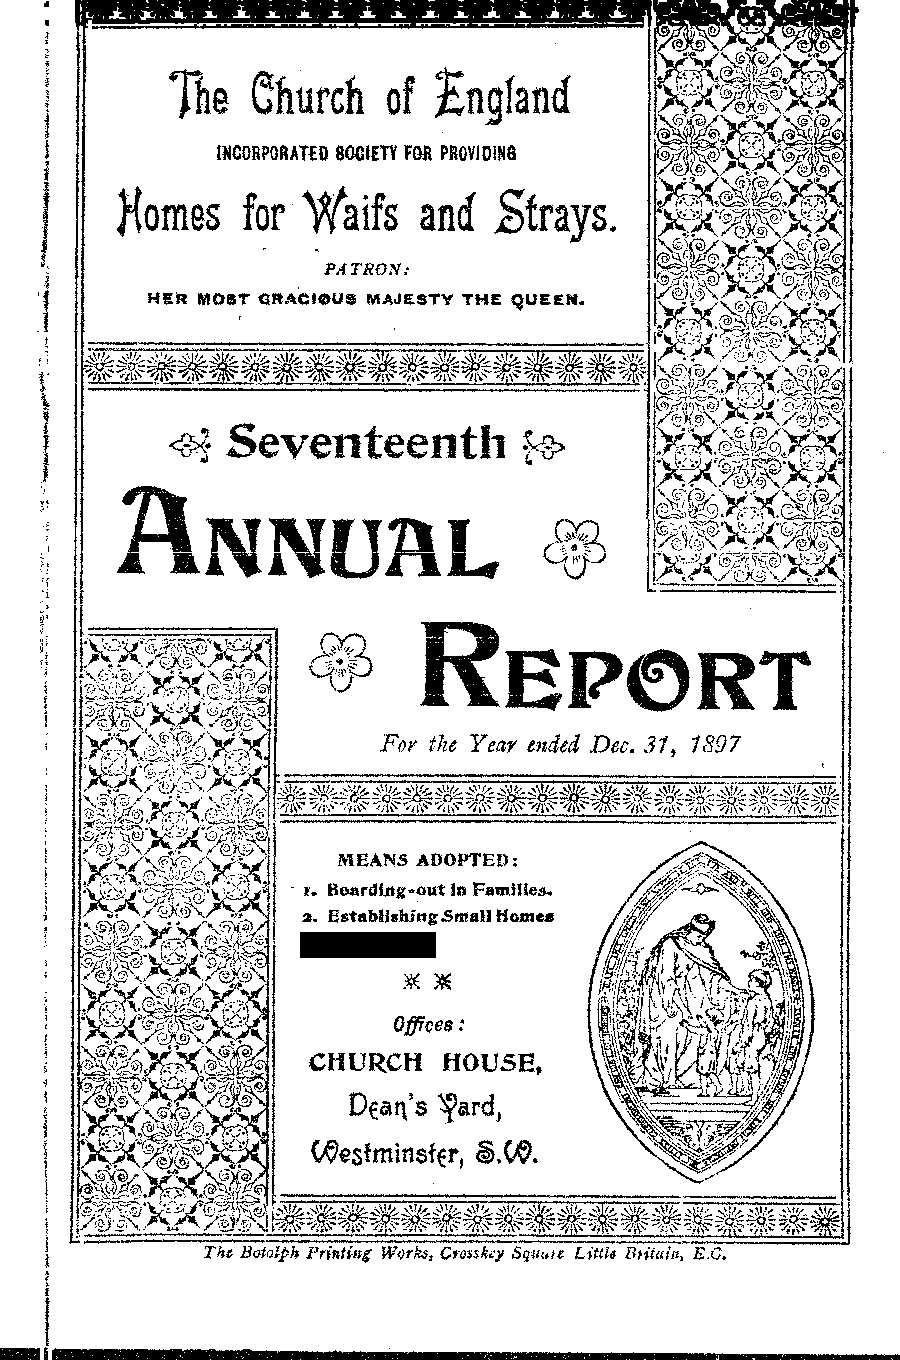 Annual Report 1897 - page 1